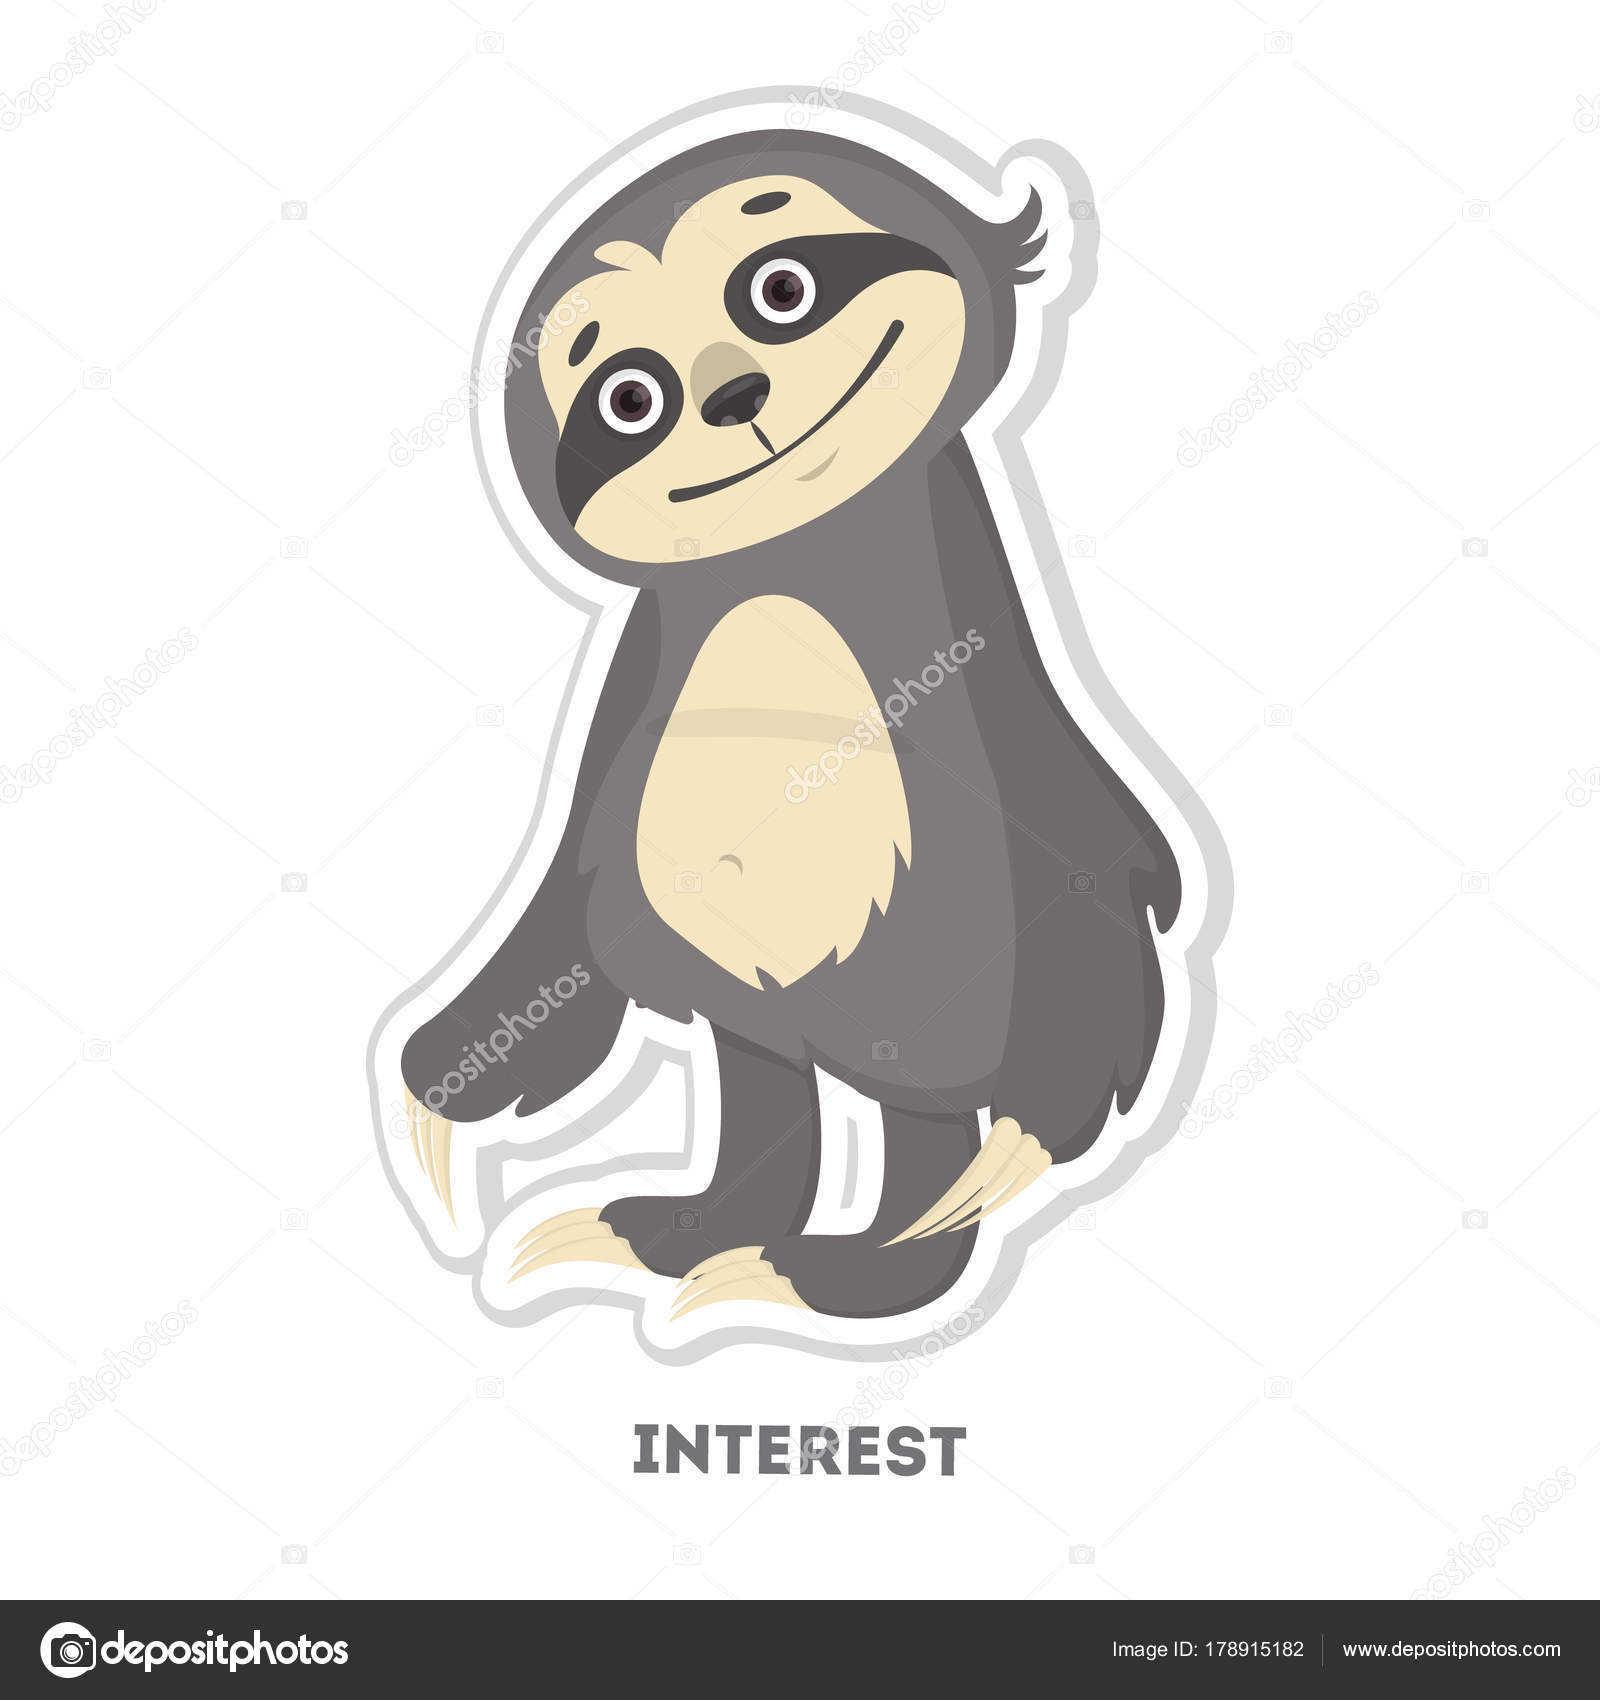 Interested sloth sticker stock vector